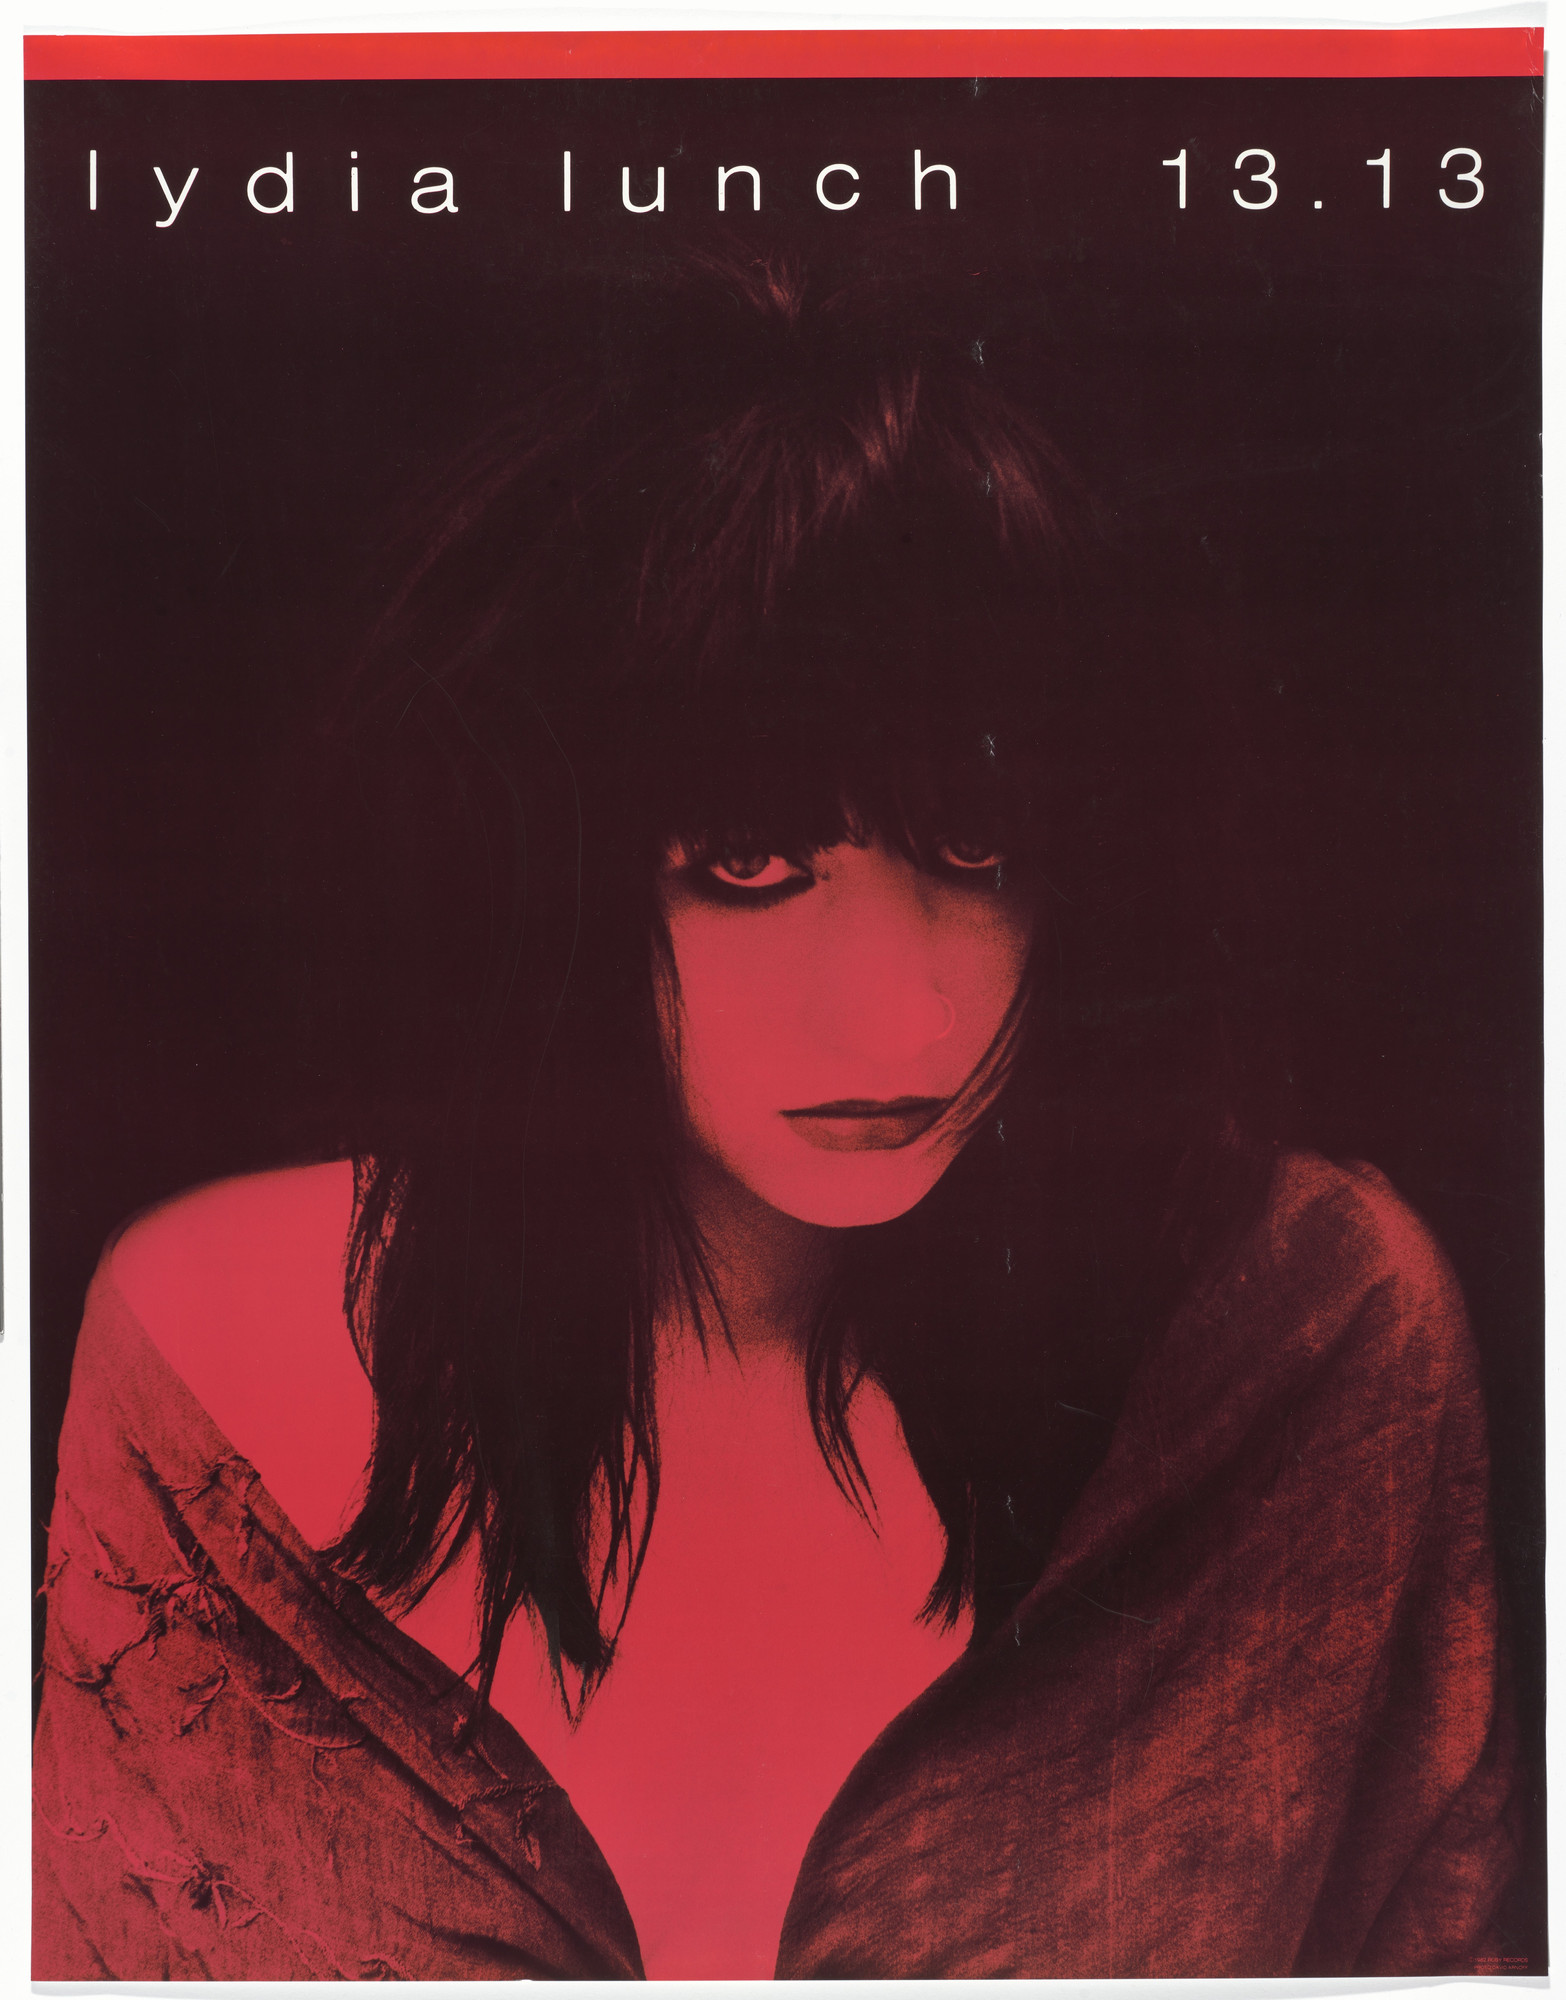 Unknown Designer, David Arnoff. Lydia Lunch, 13.13 (Poster for album distributed by Ruby Records, Los Angeles). 1981